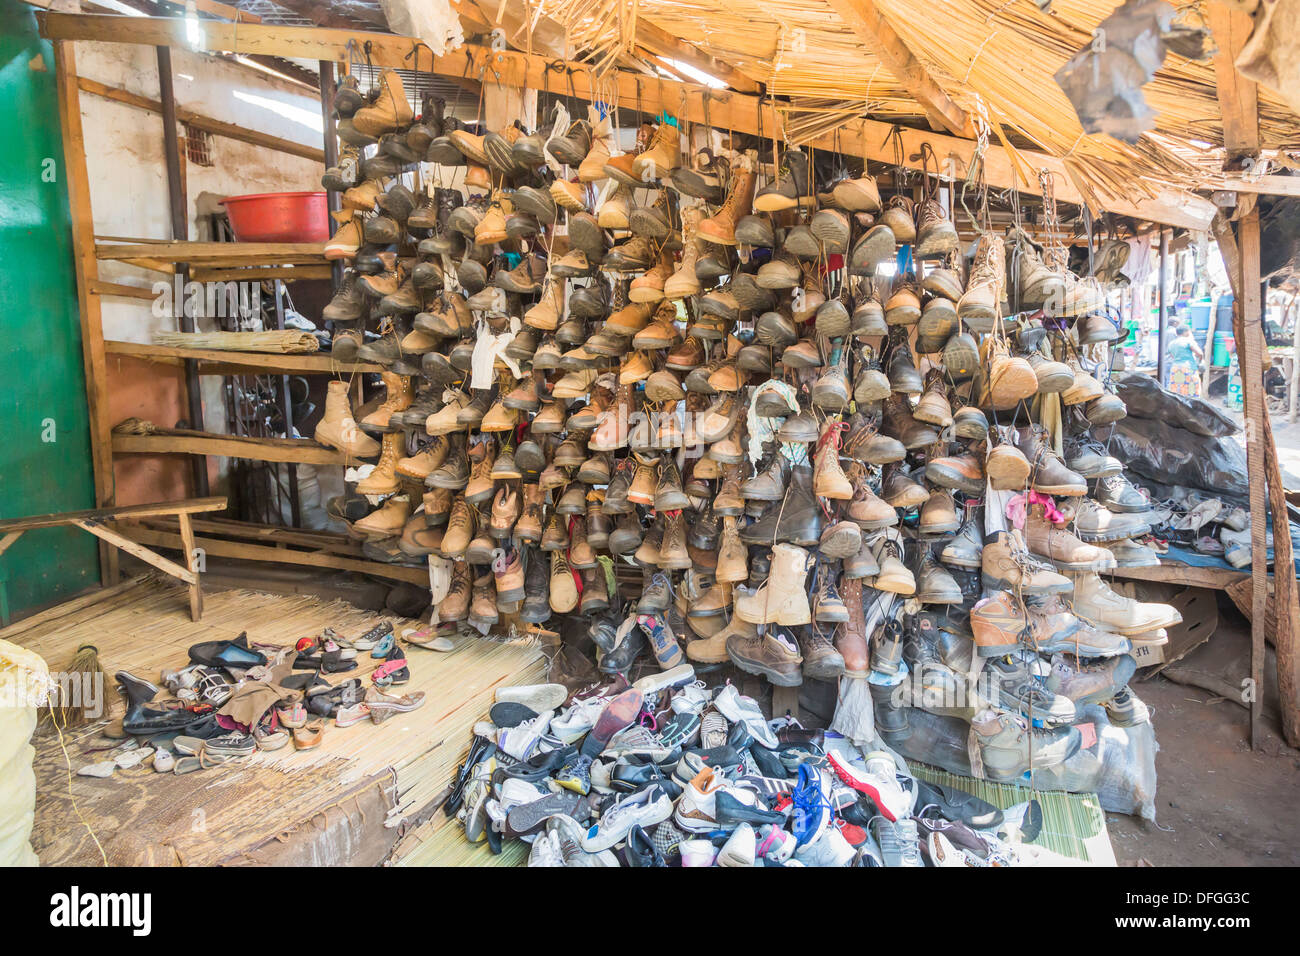 Shoes, trainers, boots and other second hand footwear, for sale in Maramba Market, Livingstone, Zambia - Stock Image